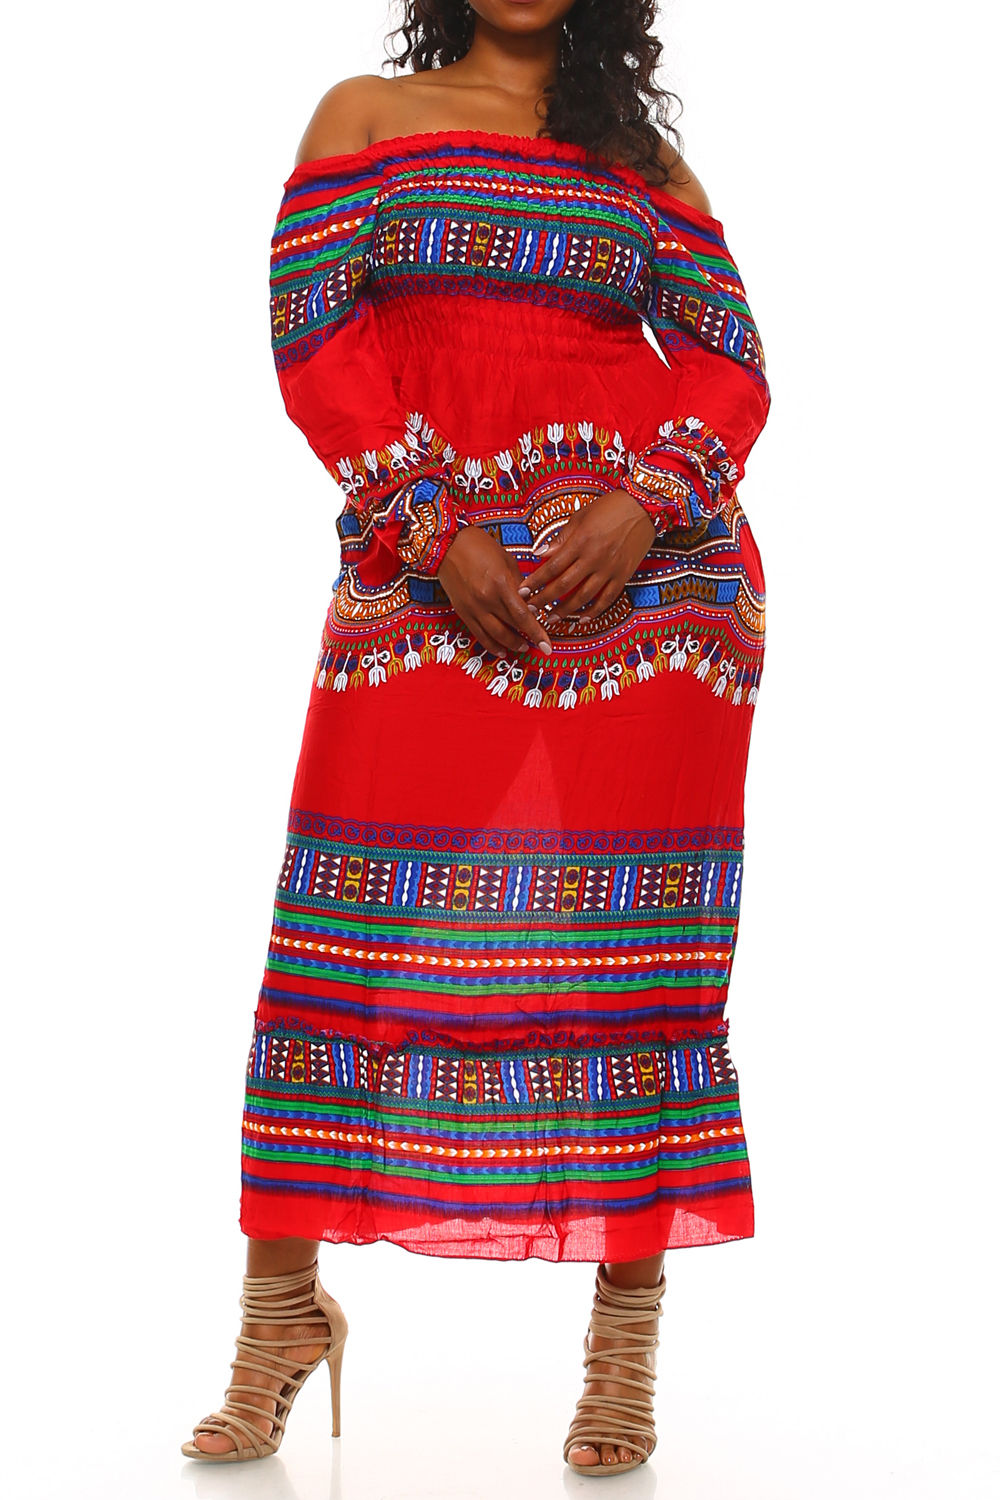 PLUS SIZE OFF SHOULDER DASHIKI PRINT MAXI DRESS | ADDICTED2FASHION